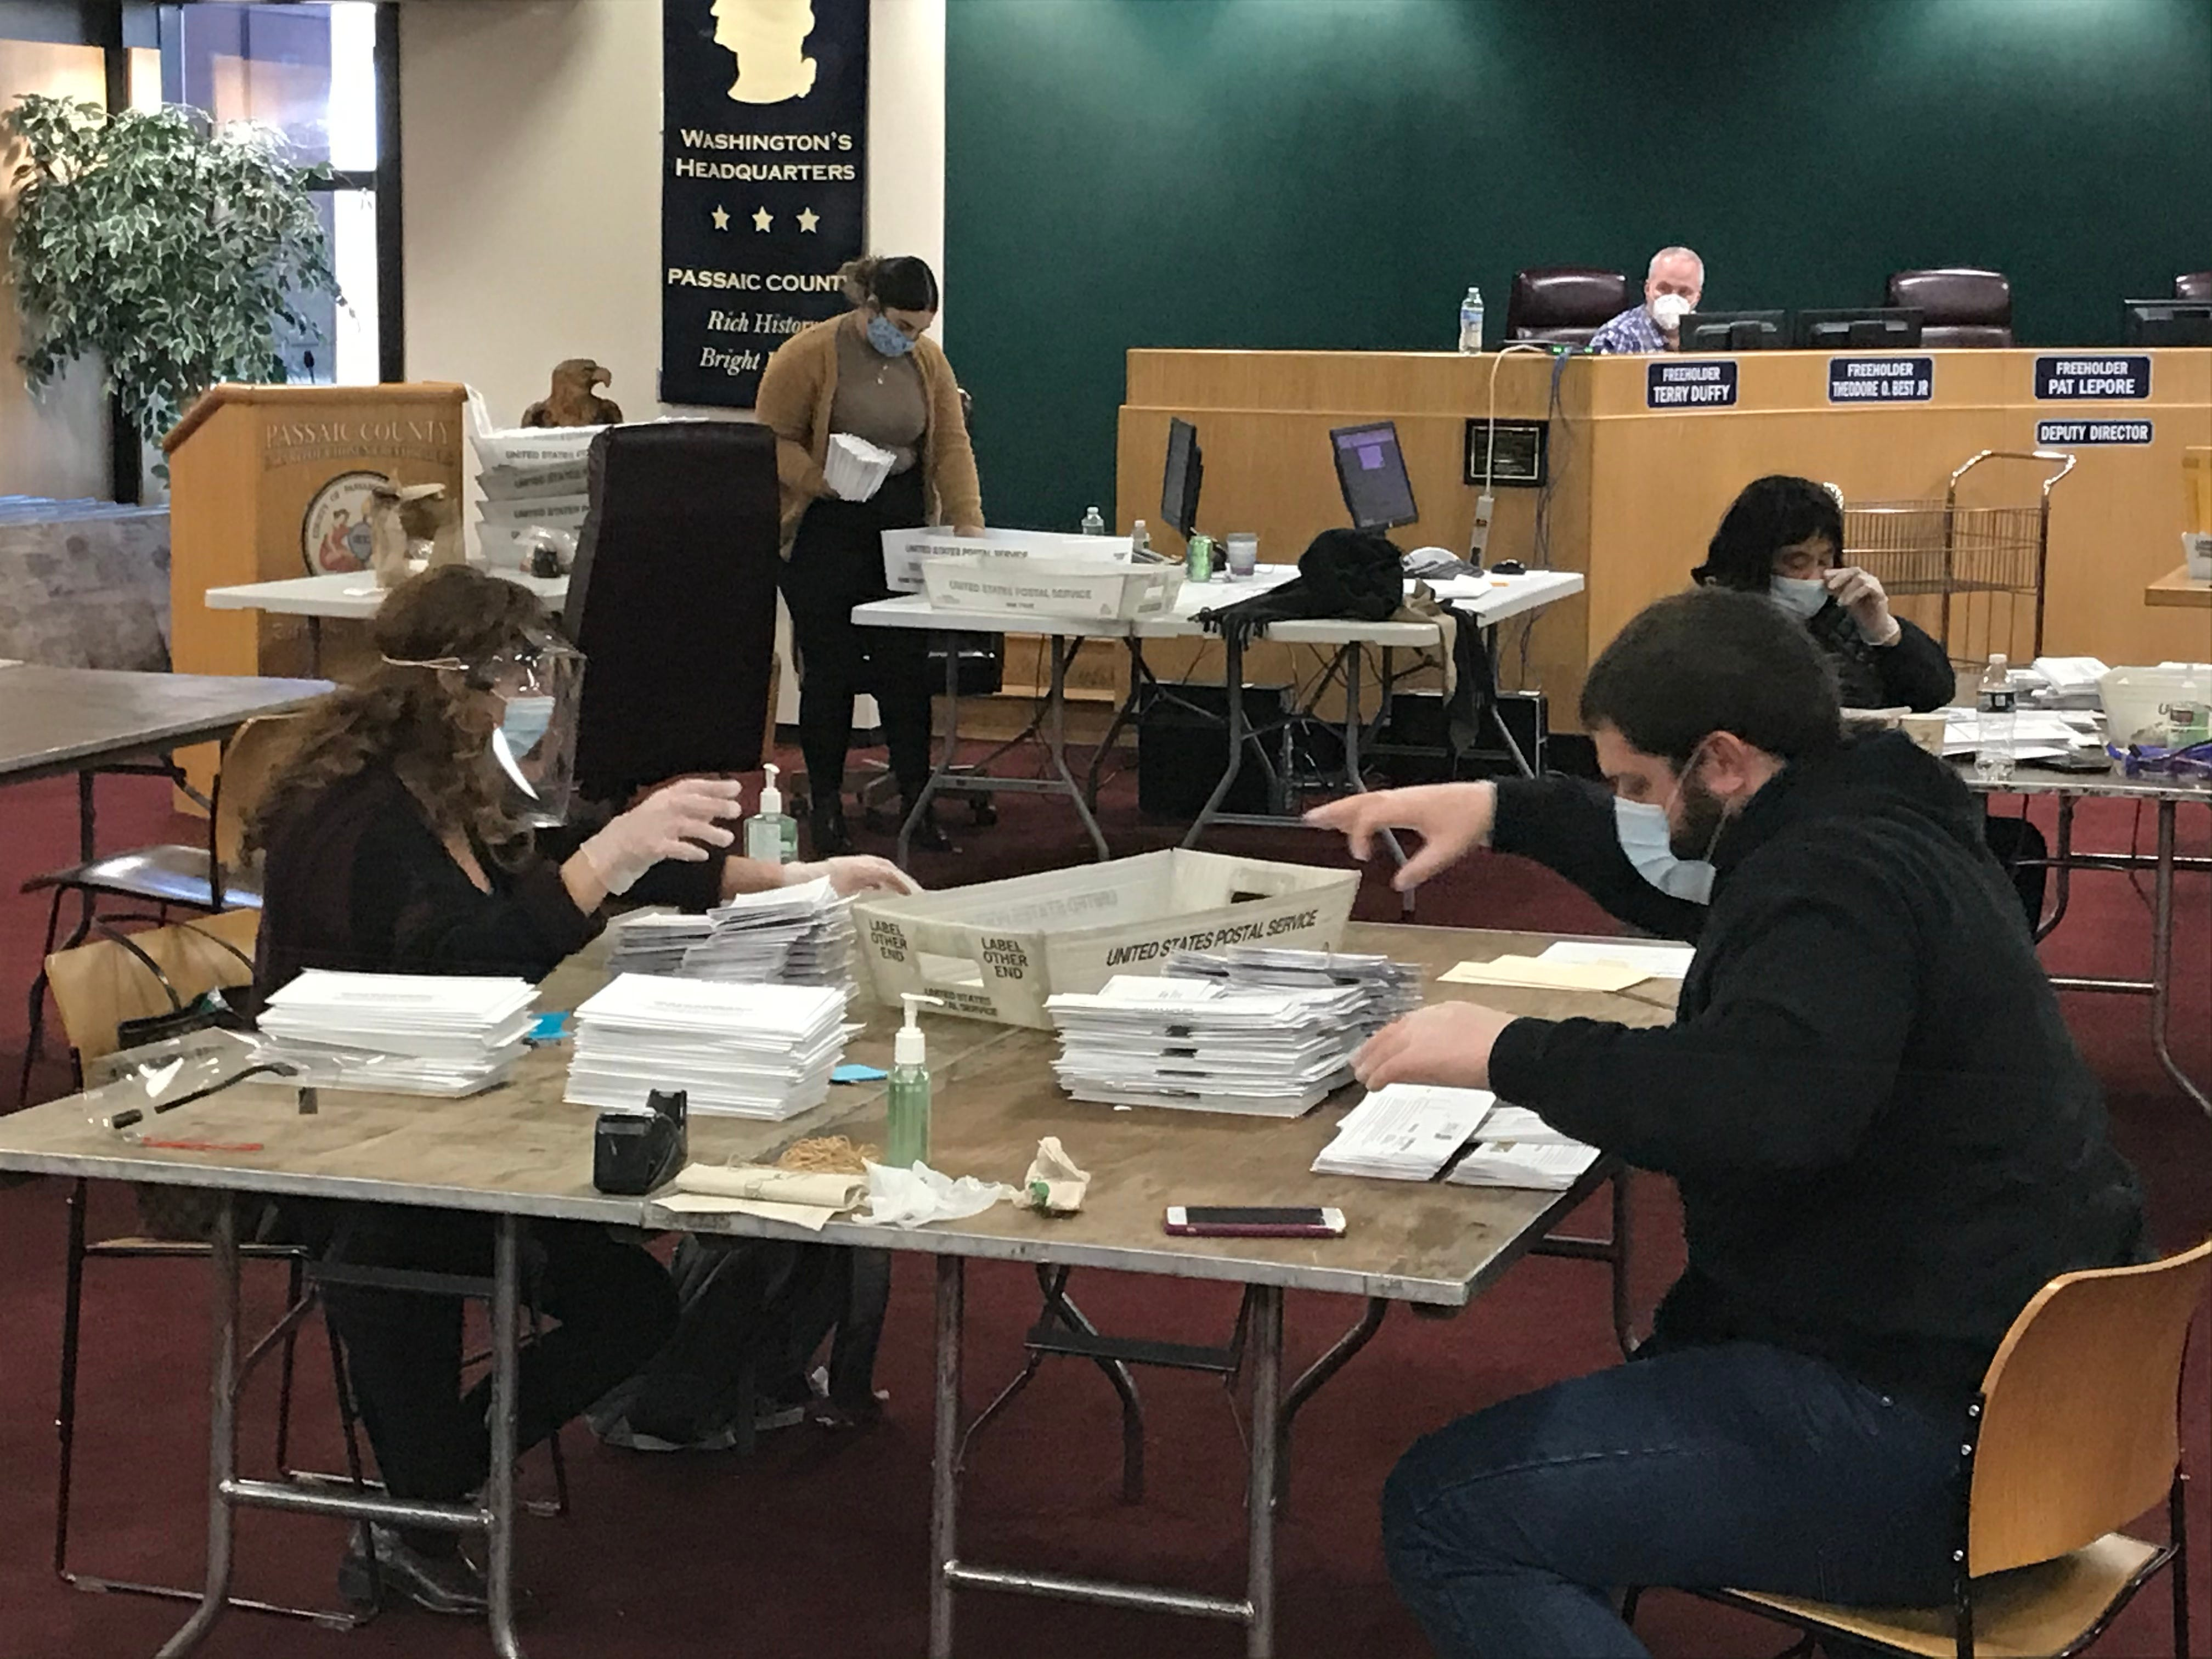 Counting ballots at the Passaic County, New Jersey Board of Elections